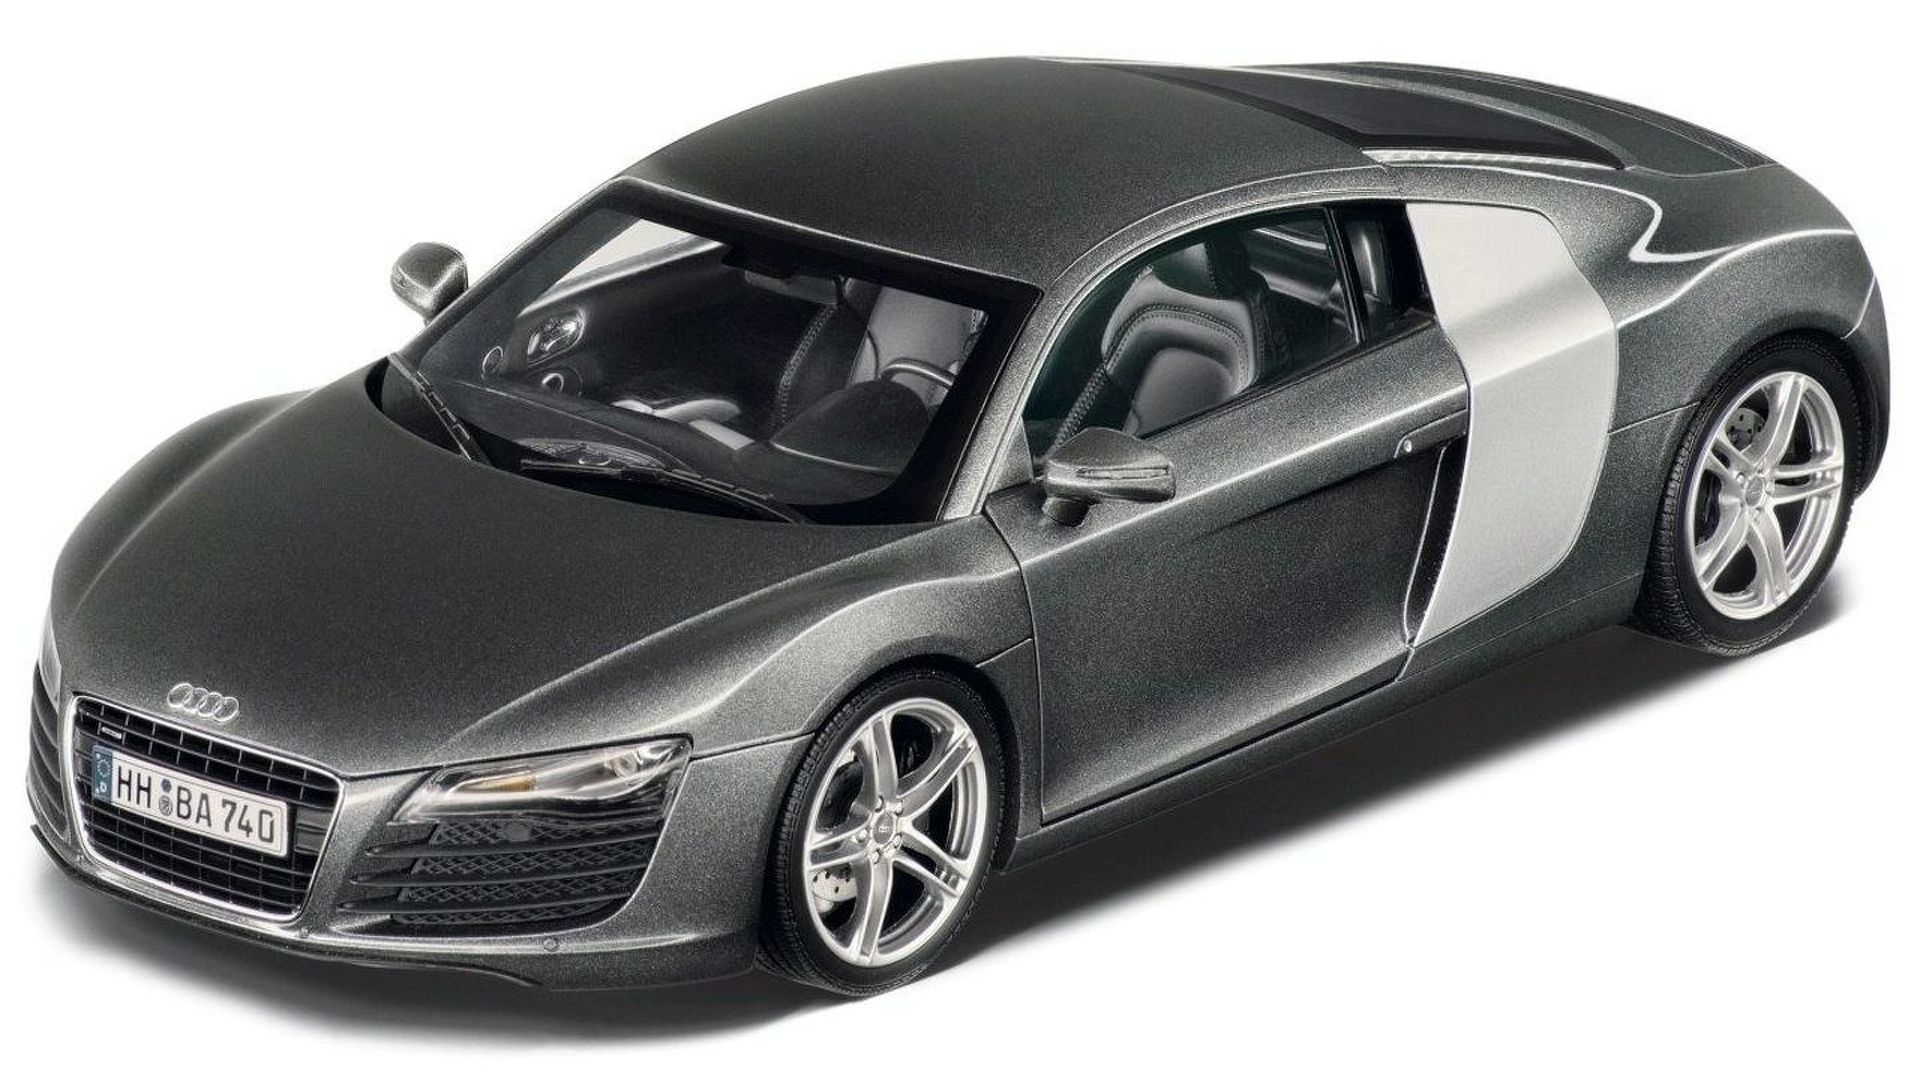 Audi R8 for only £45